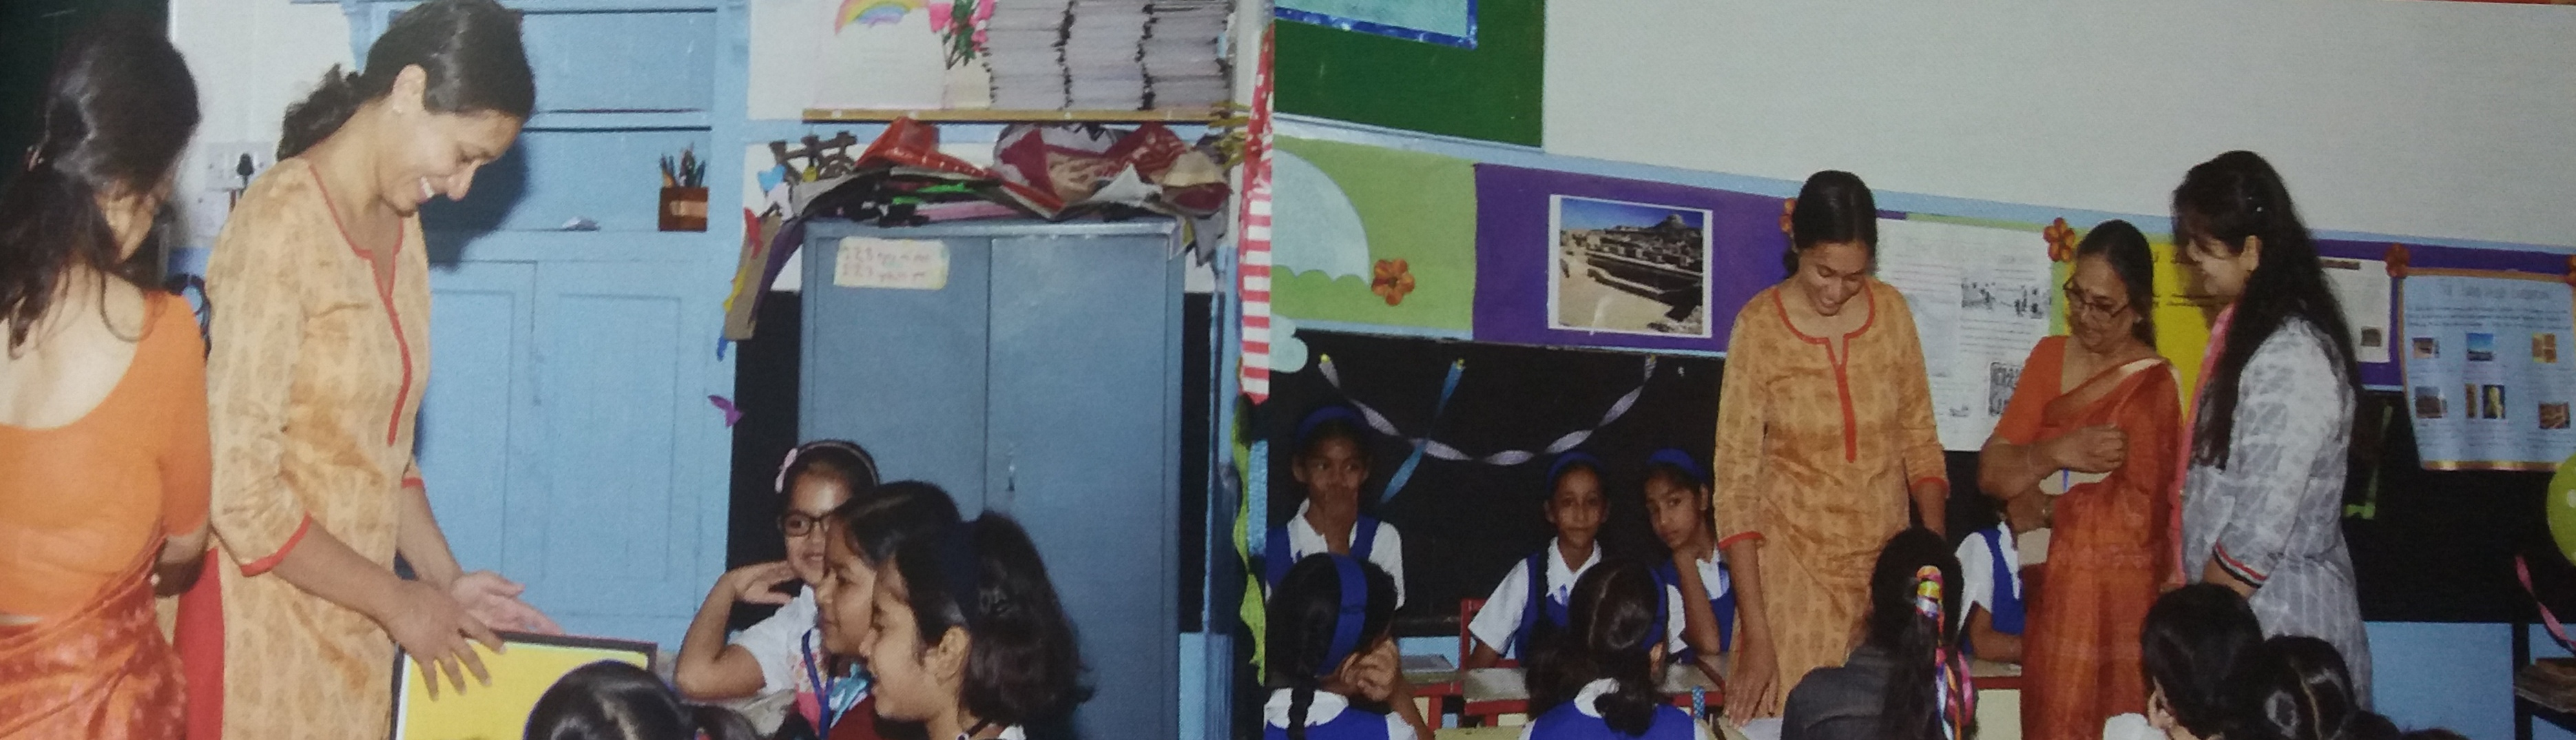 Two photos - Varsha Seshan visiting classrooms with young children and two teachers